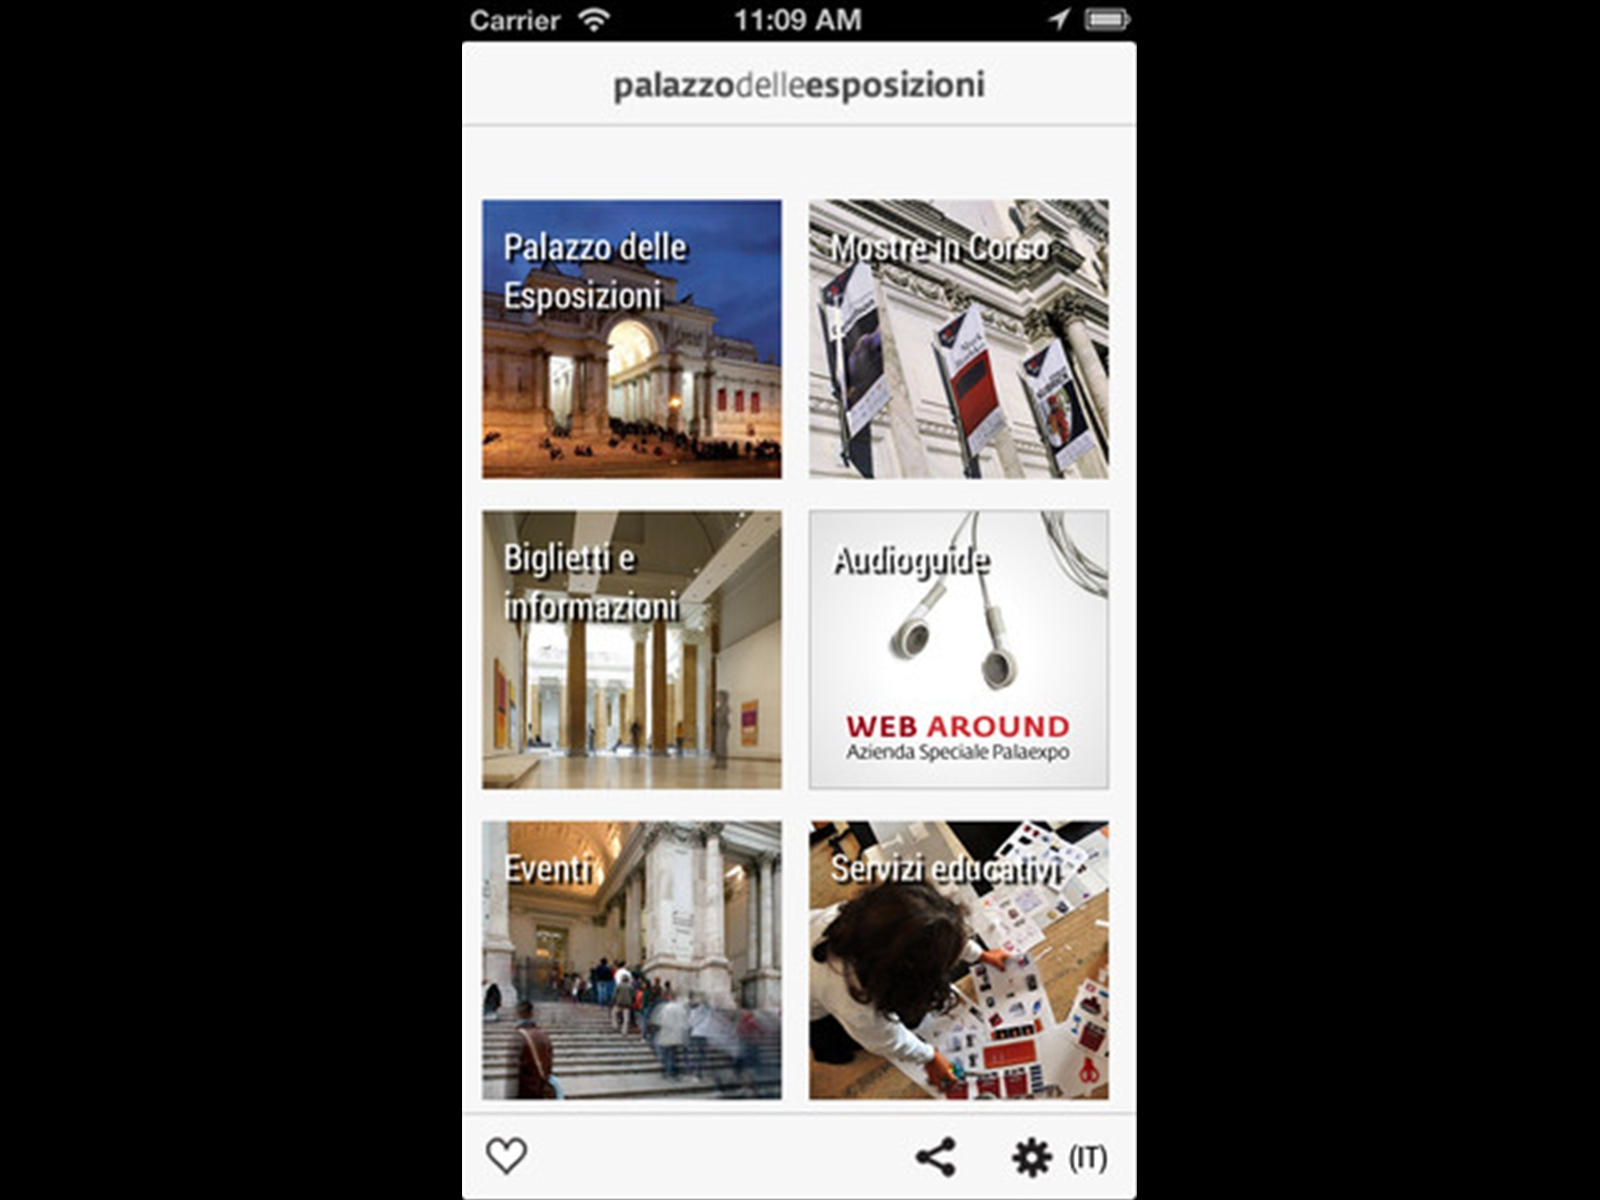 The exhibitions official app